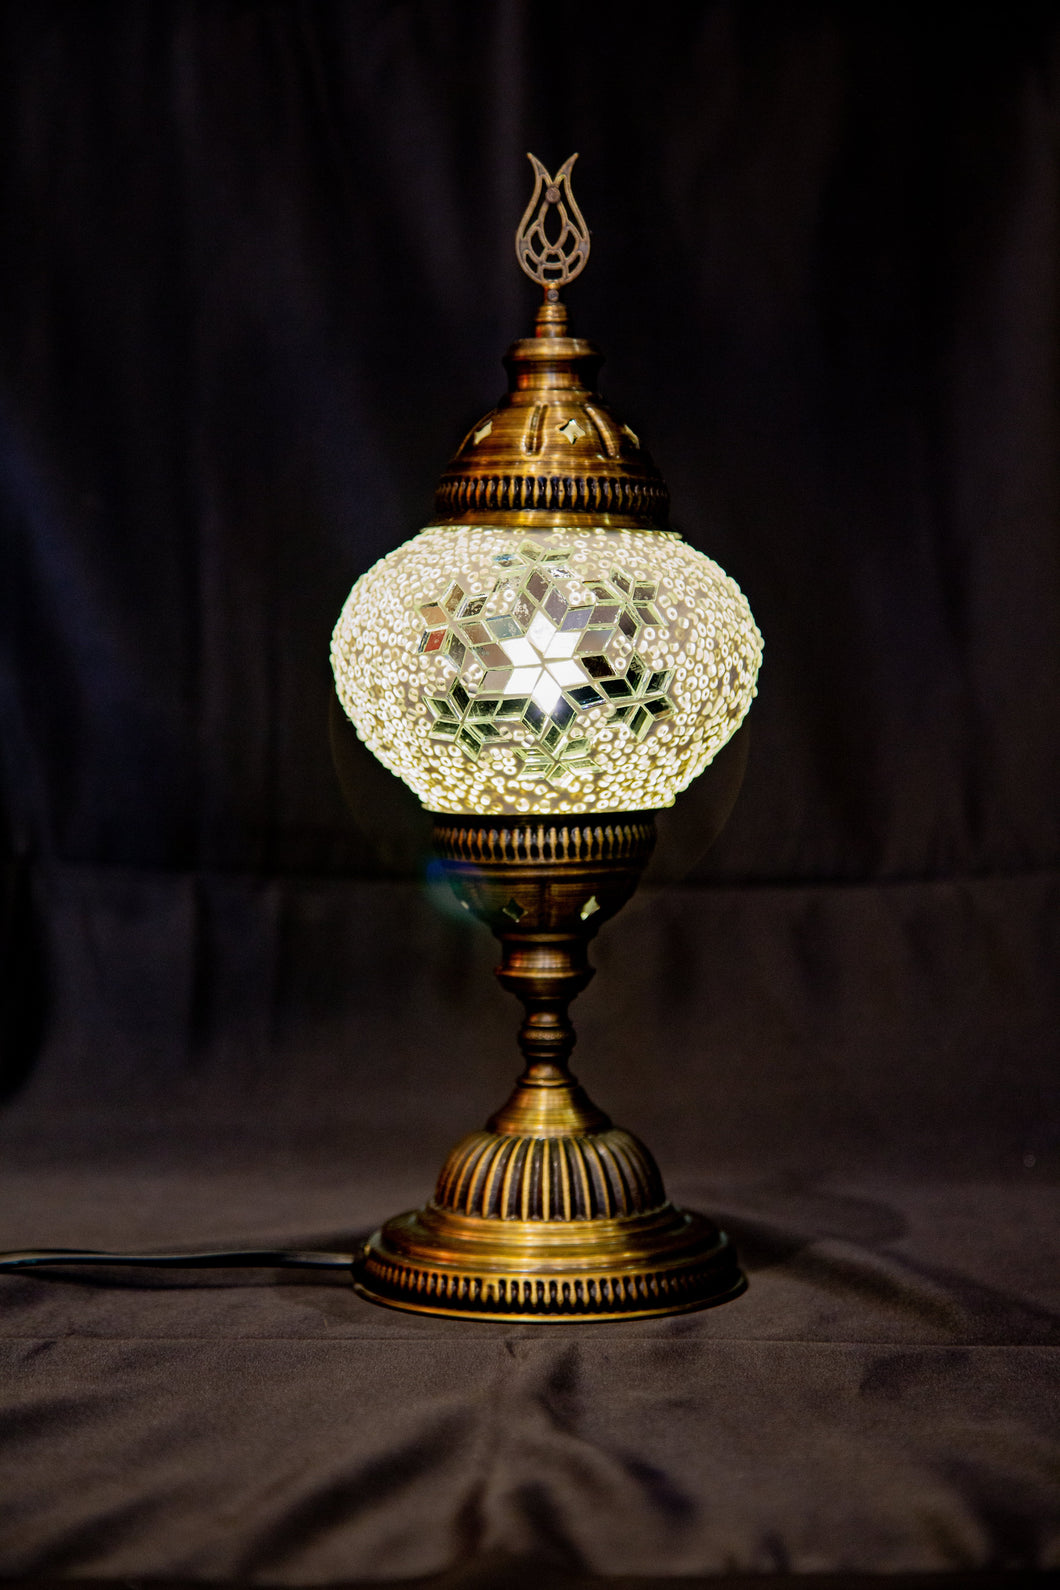 Medium Table Lamp-White - Southern Candle Studio